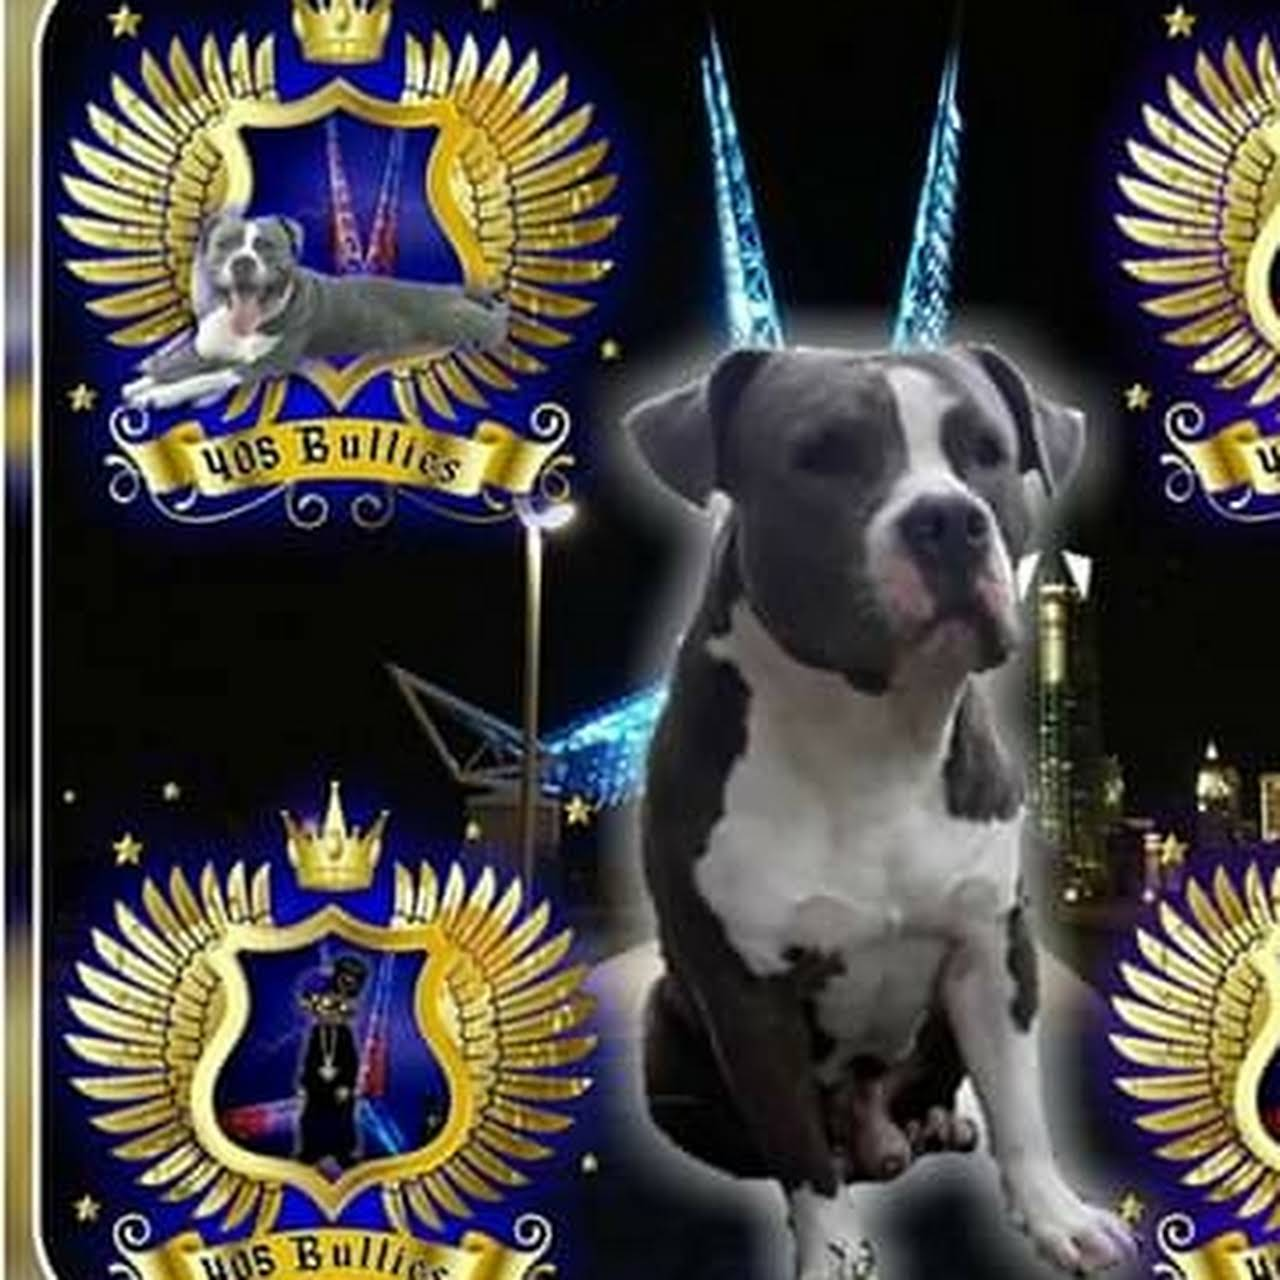 405 Bullies Kennels - American Bully Breeder in Oklahoma City